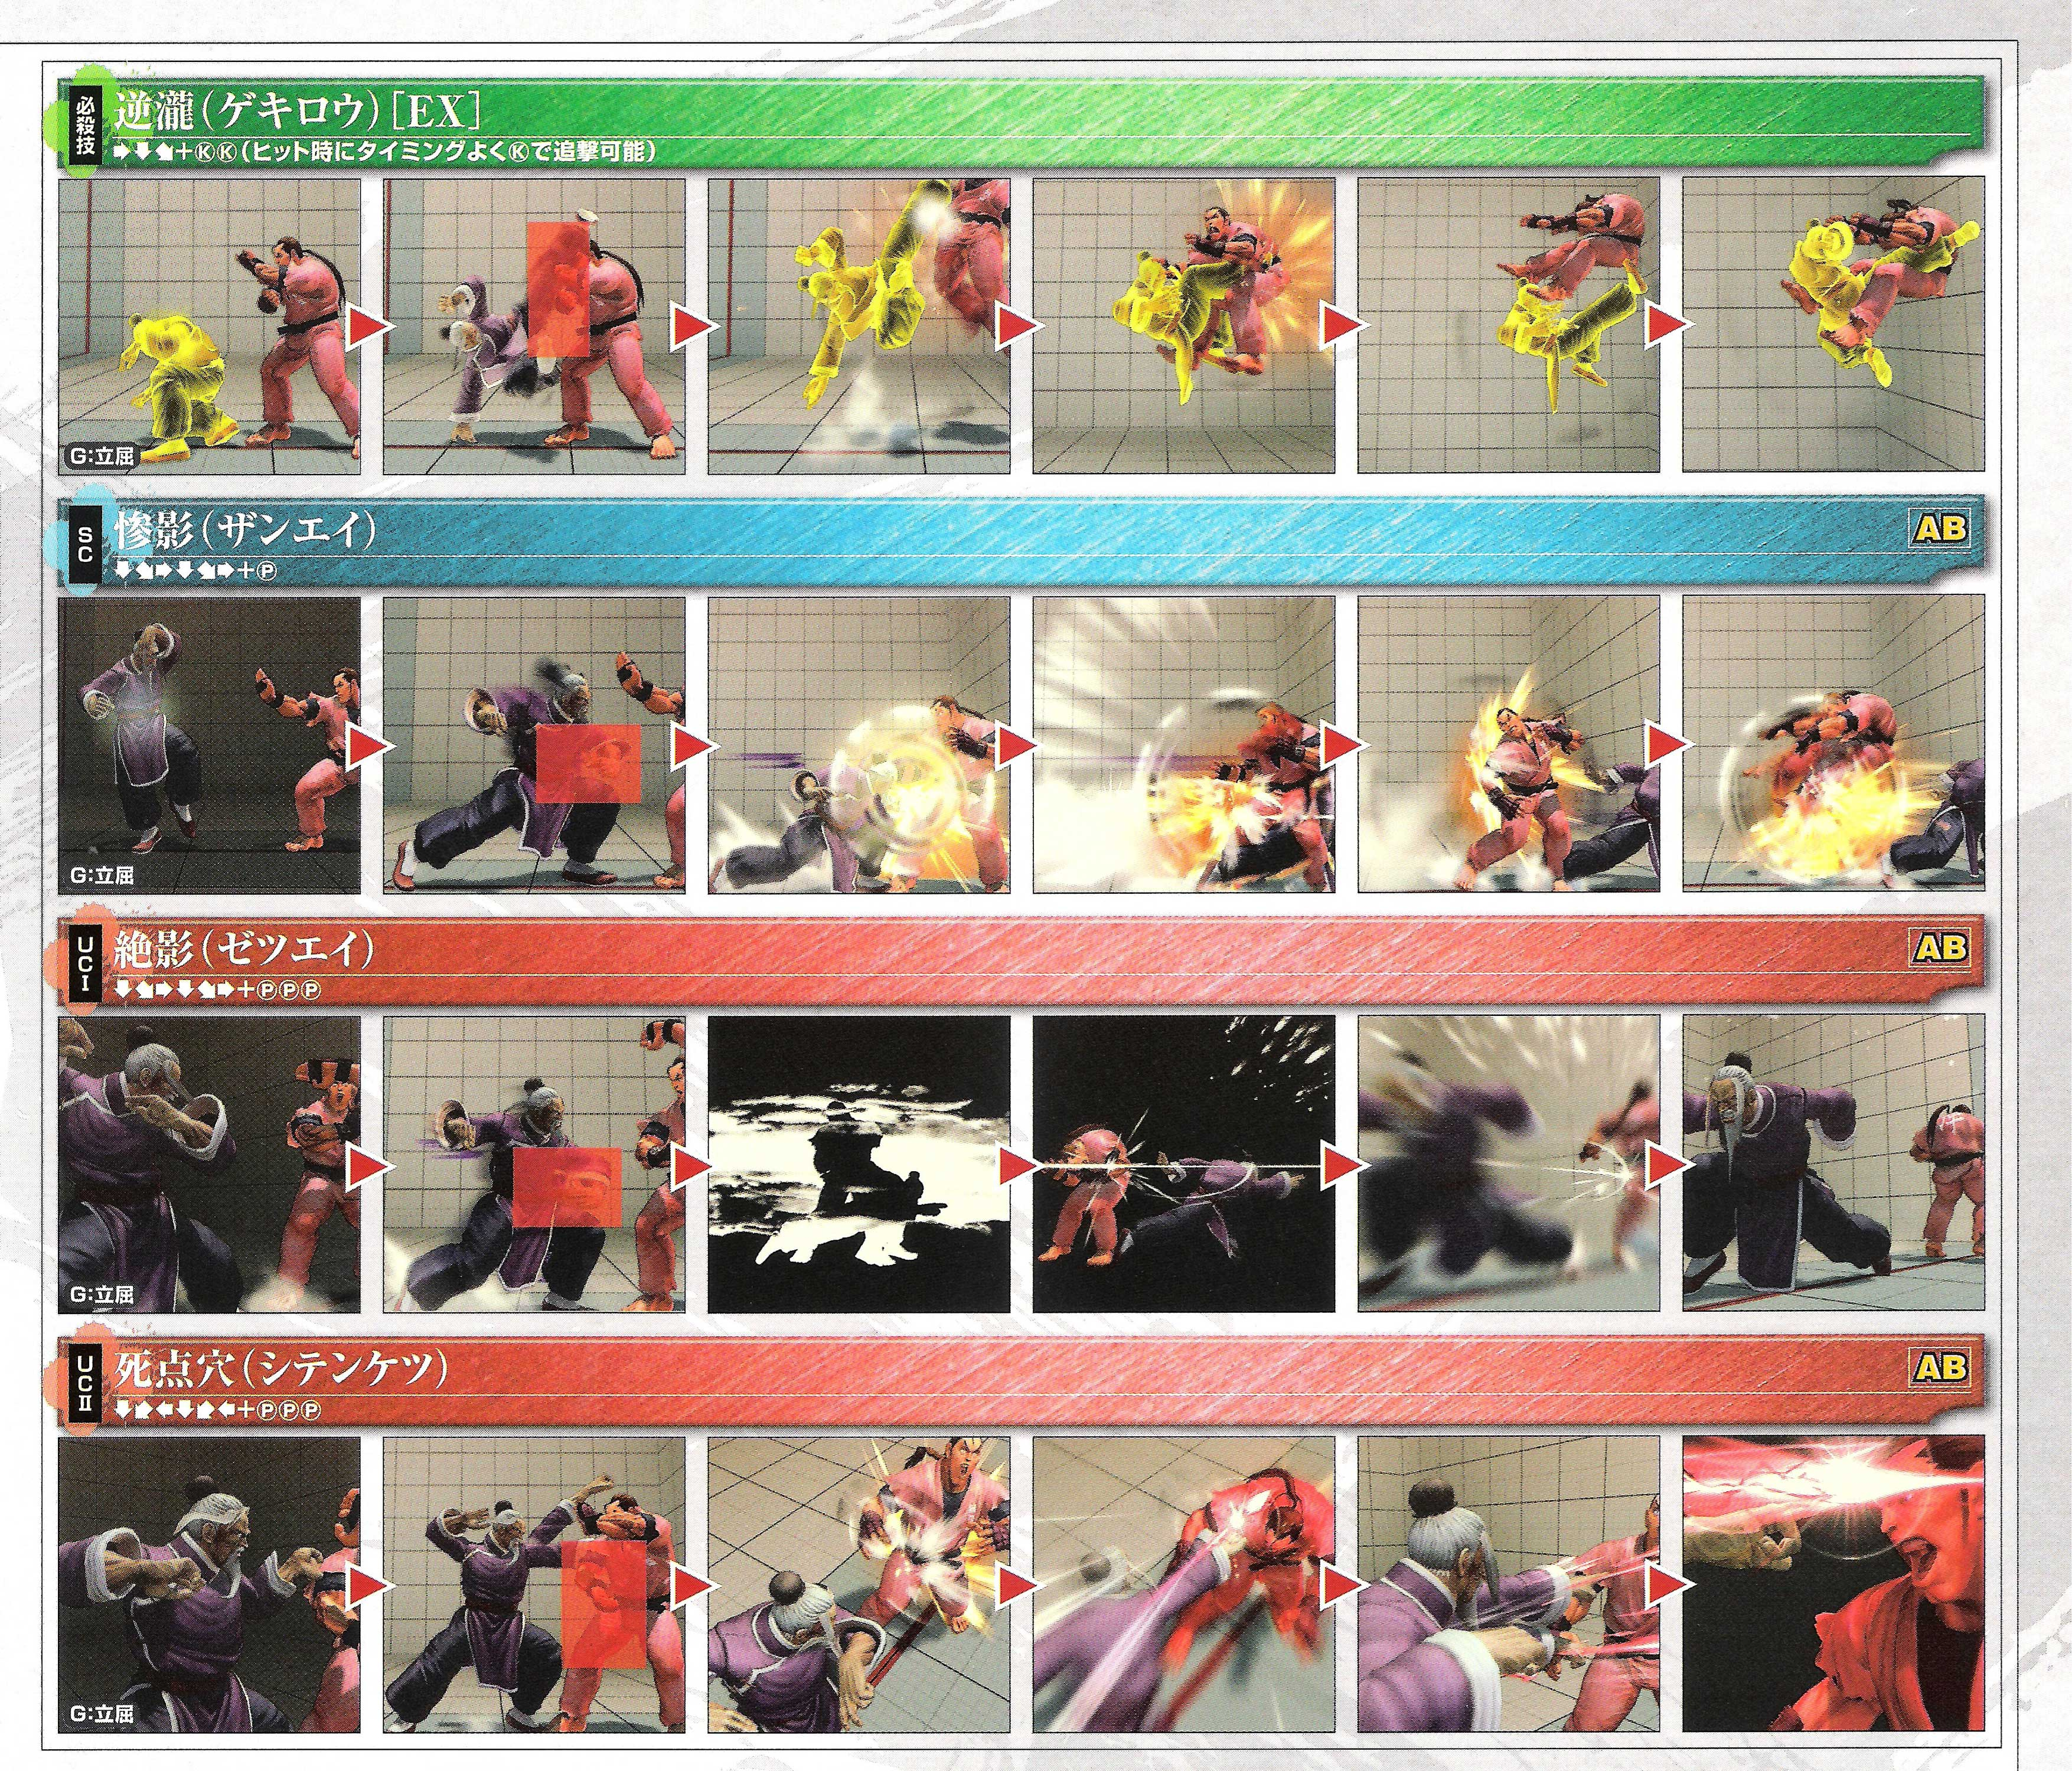 Gen's hit box information for Super Street Fighter 4 Arcade Edition image #6